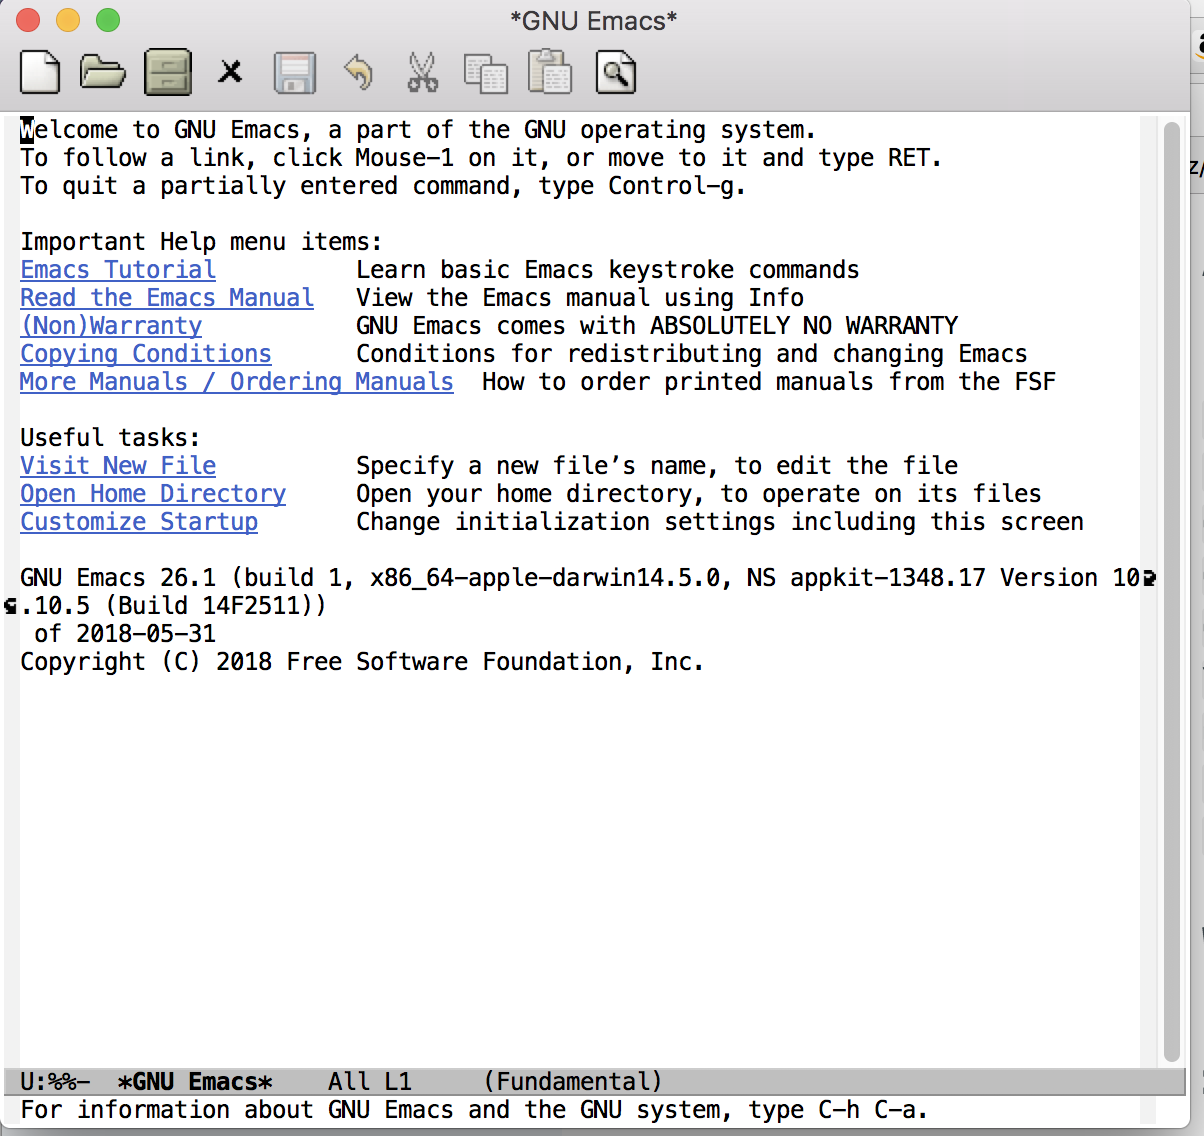 Getting Started with emacs in 30 Minutes